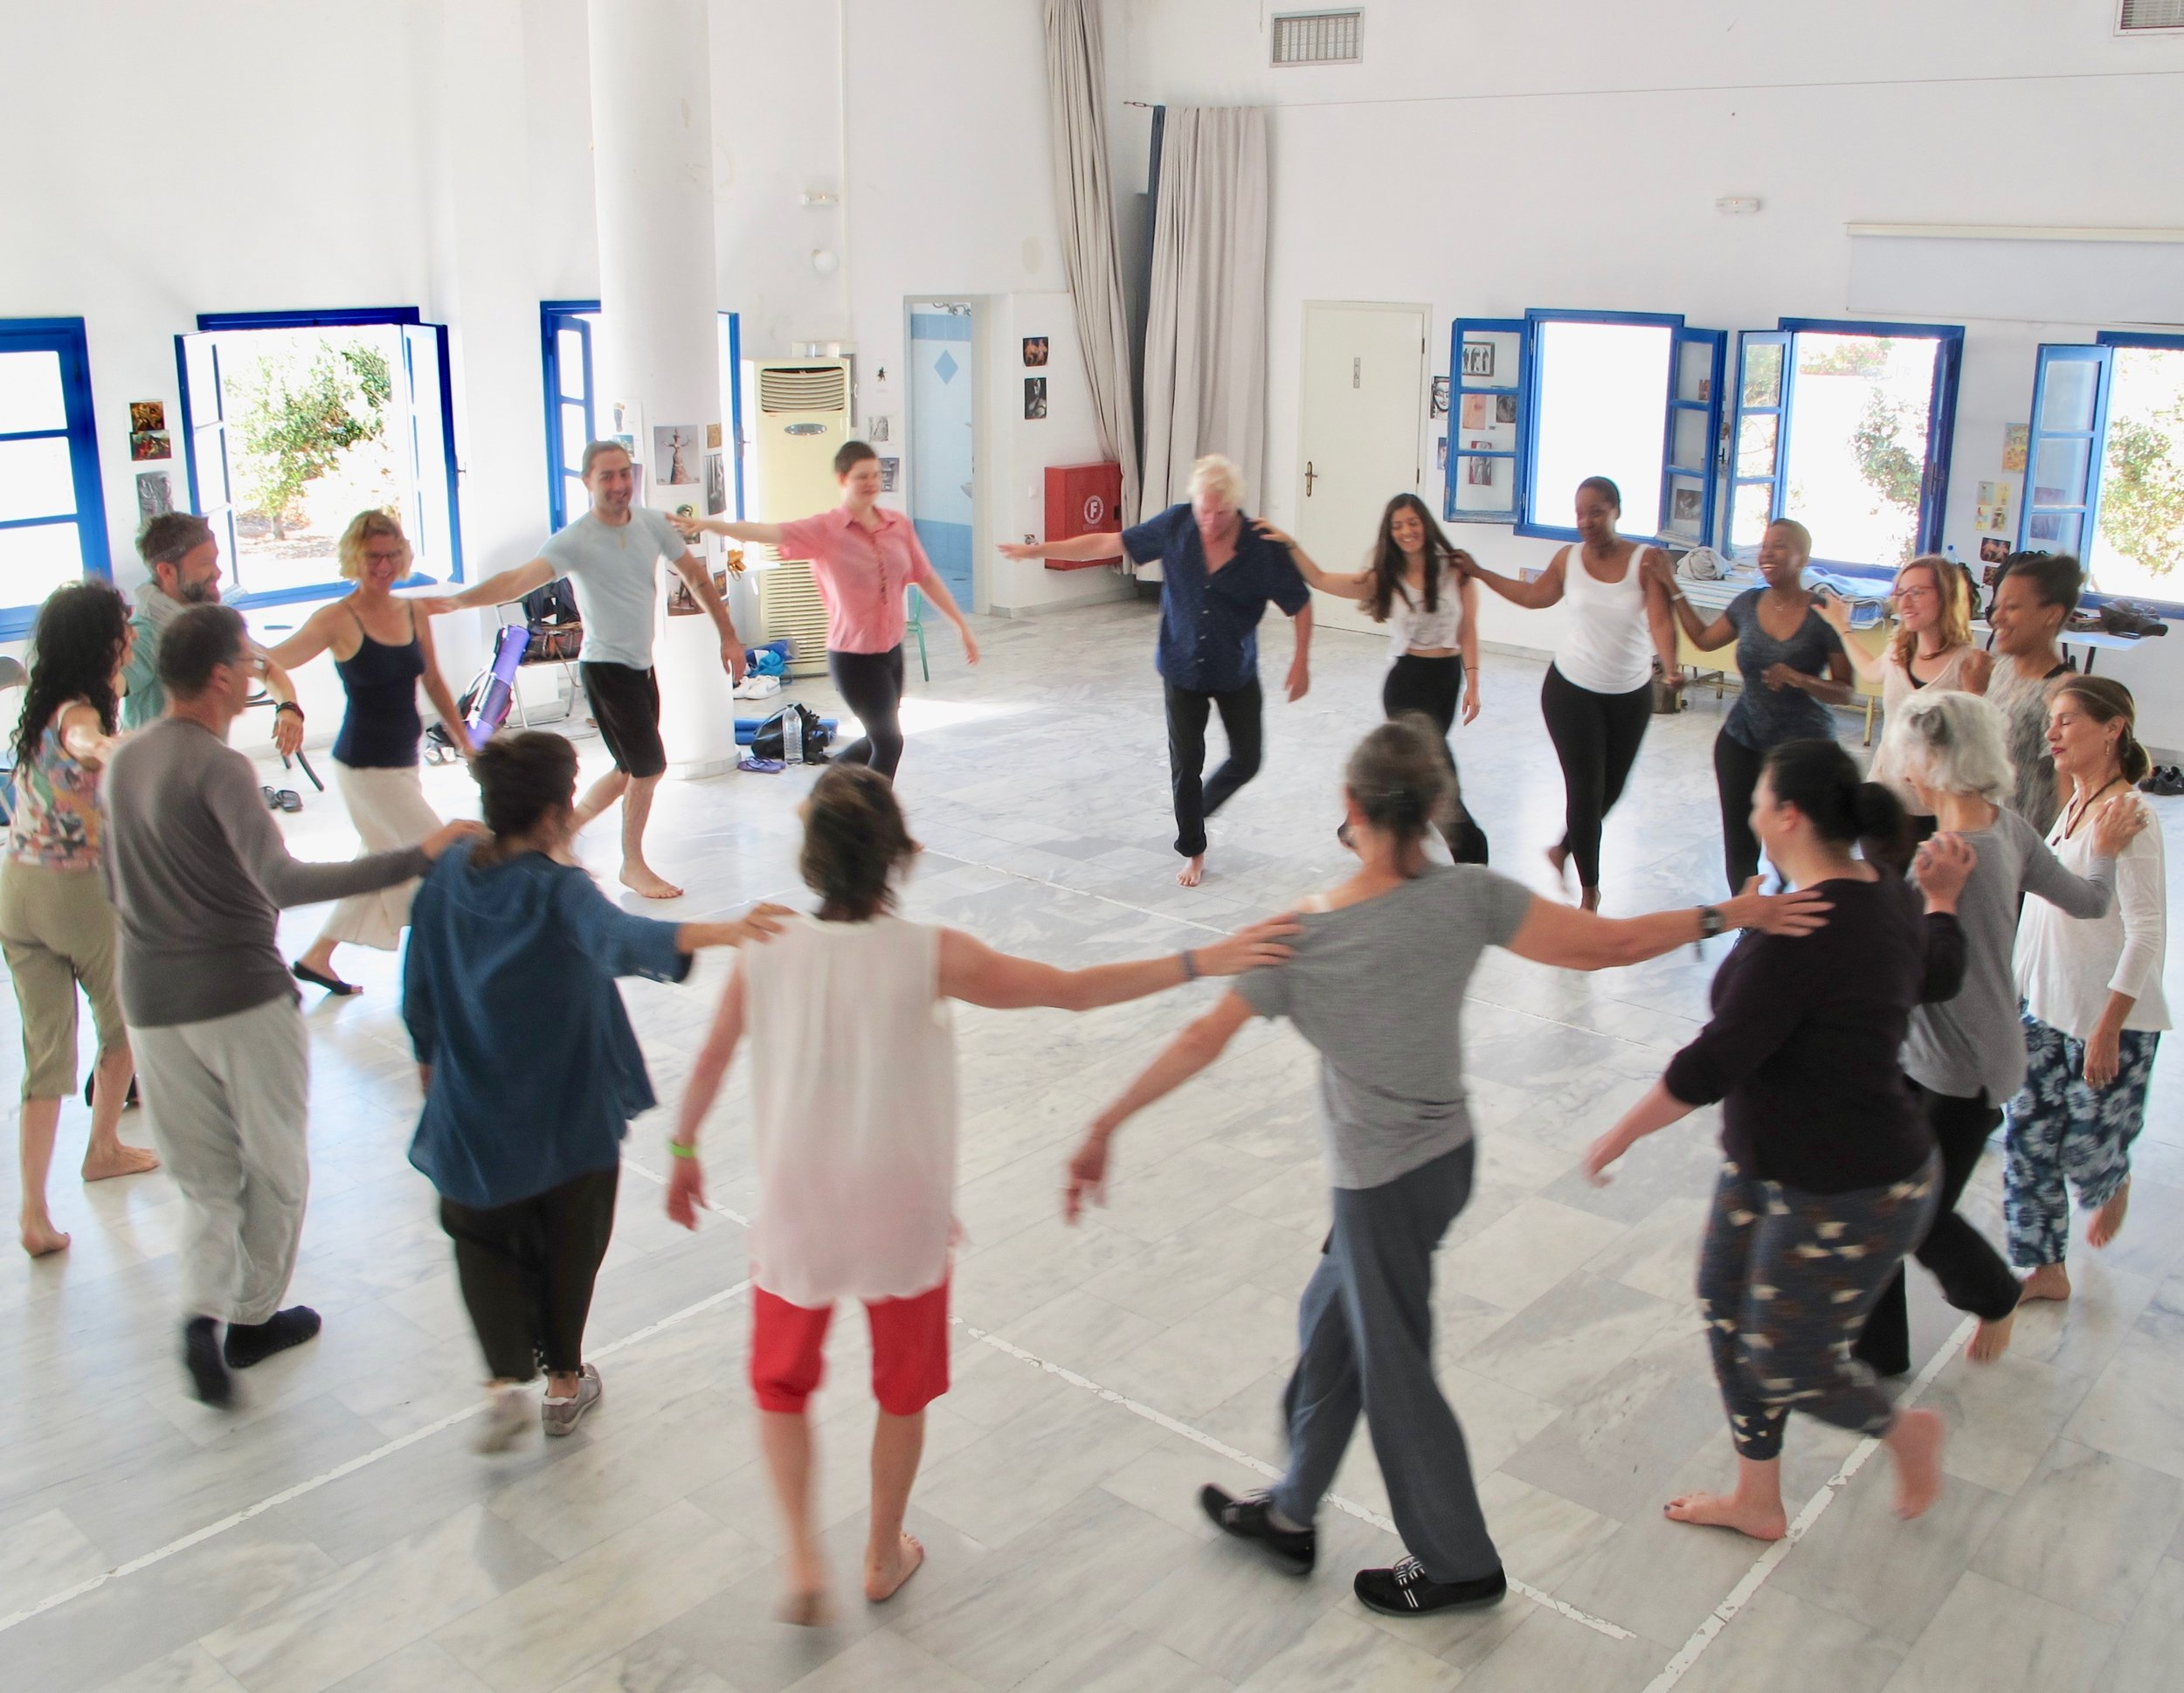 Enjoying a Greek folk dance in our beautiful, sunny (marble floored!) classroom. The space is graciously shared with us by the people of Folegandros.